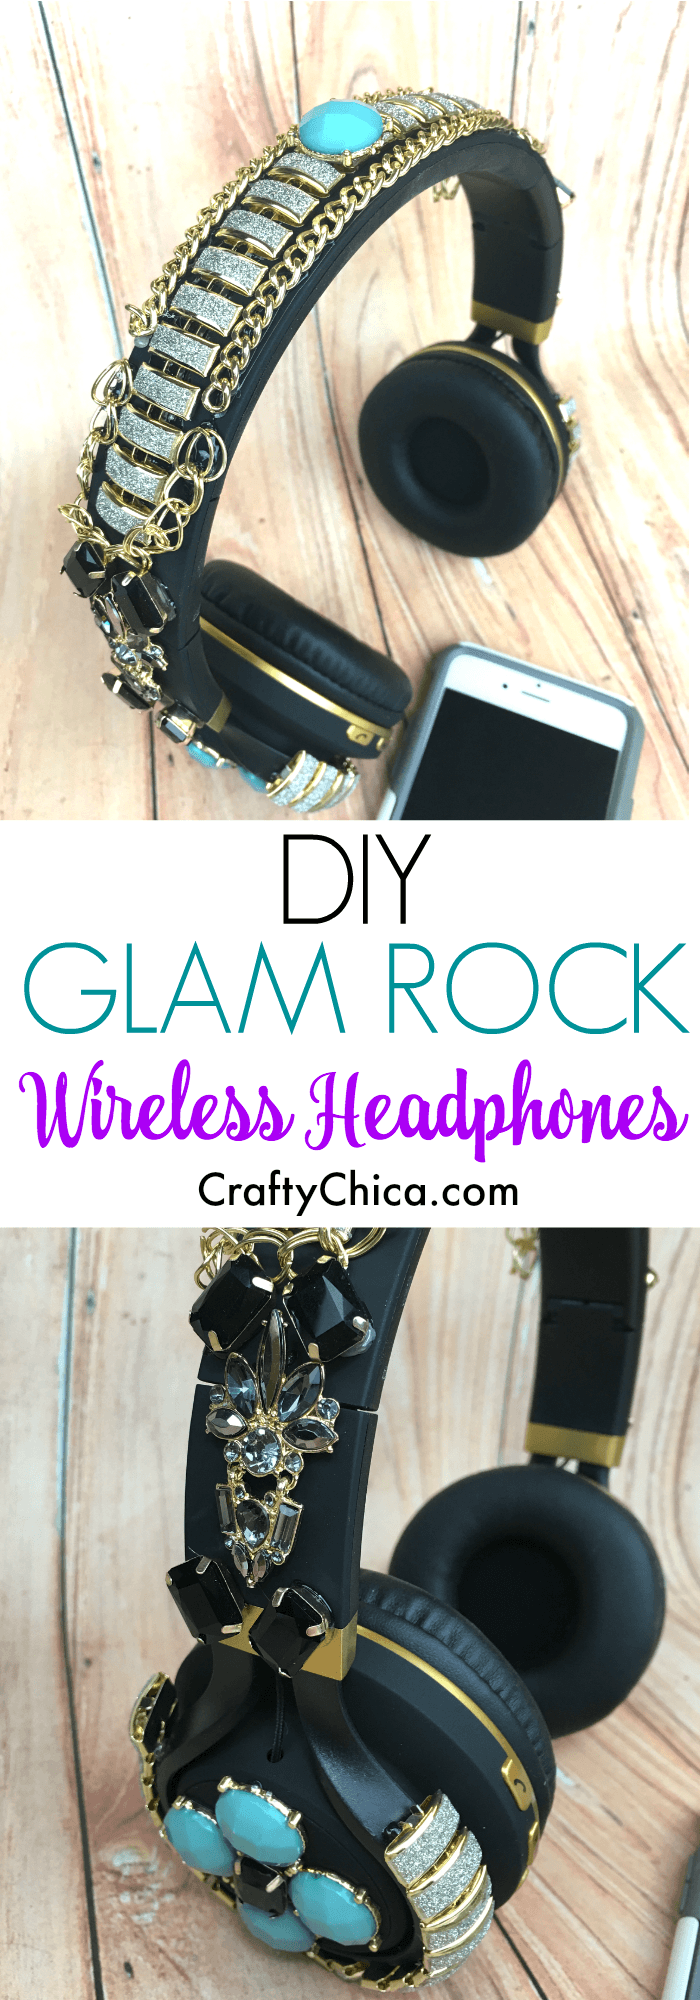 glam-rock-headphones-P